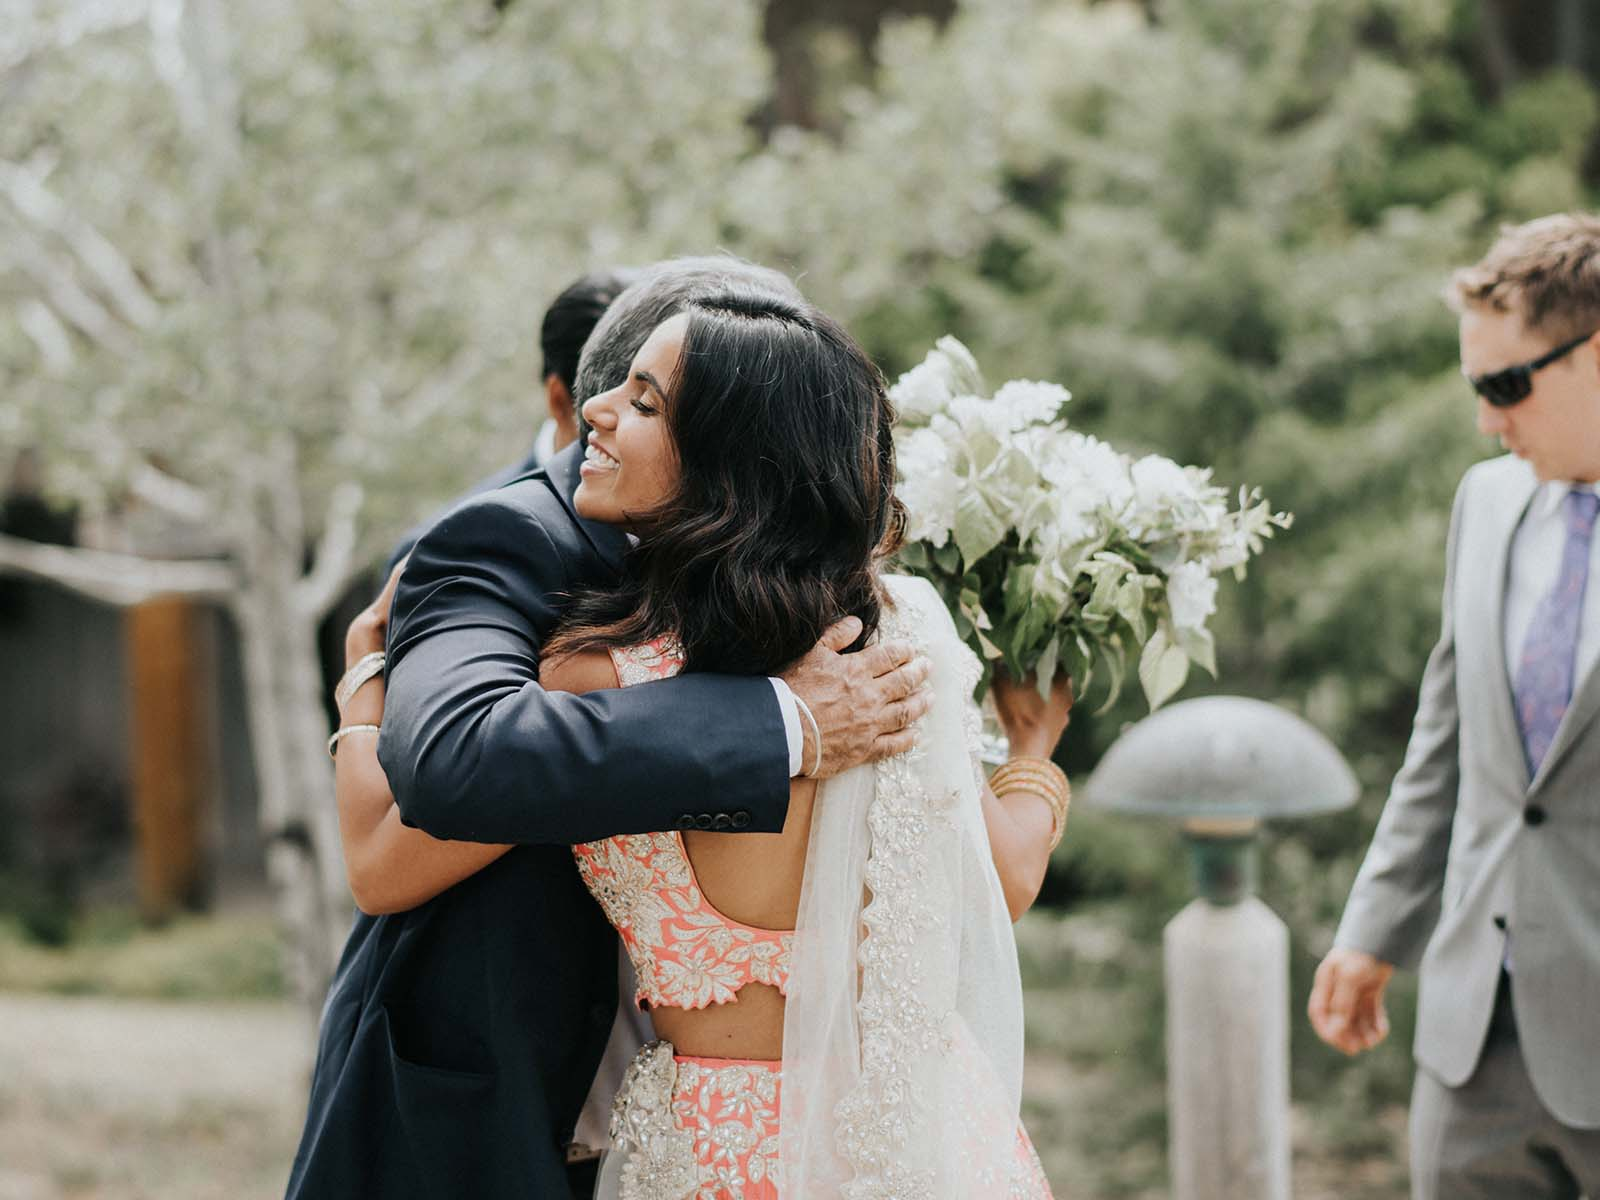 Kirin and Josh wedding embrace